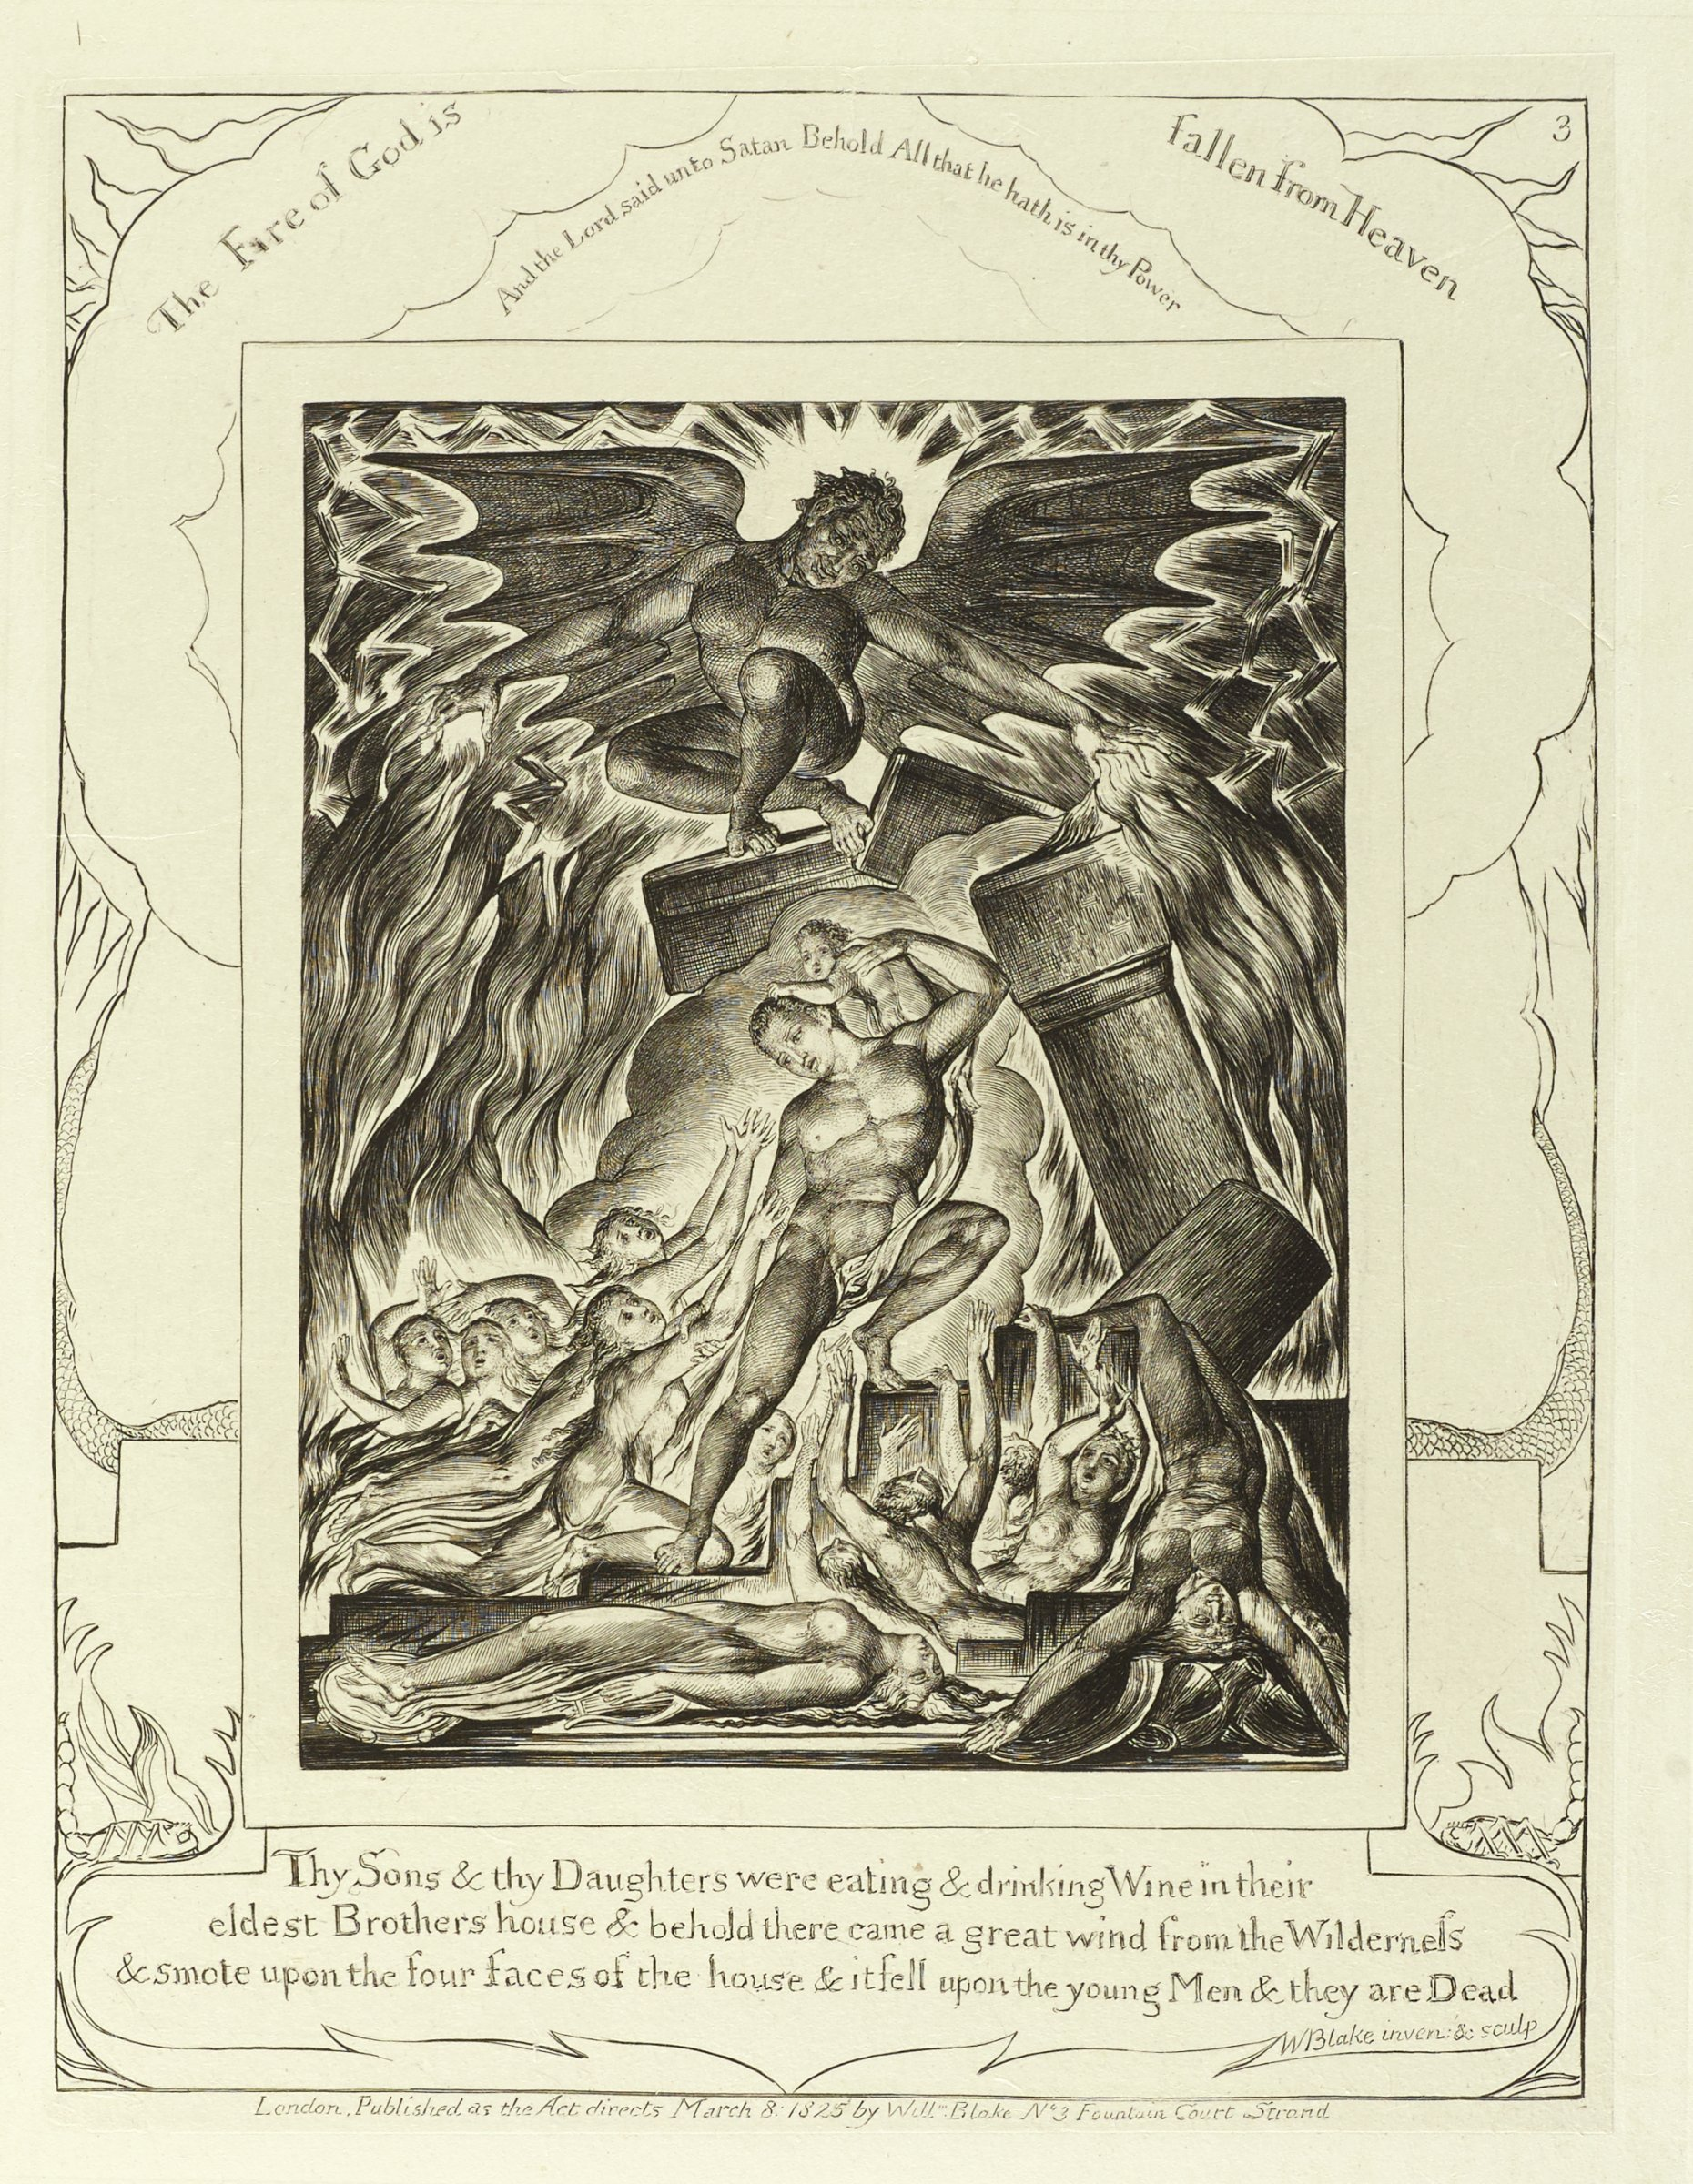 A man in the middle of the composition holds a baby on his left shoulder. Surrounding him are figures reaching up to him in desperation. A demon figure stands on top of a column and shoots fire from his hands. The image is surrounded in the margins with text.